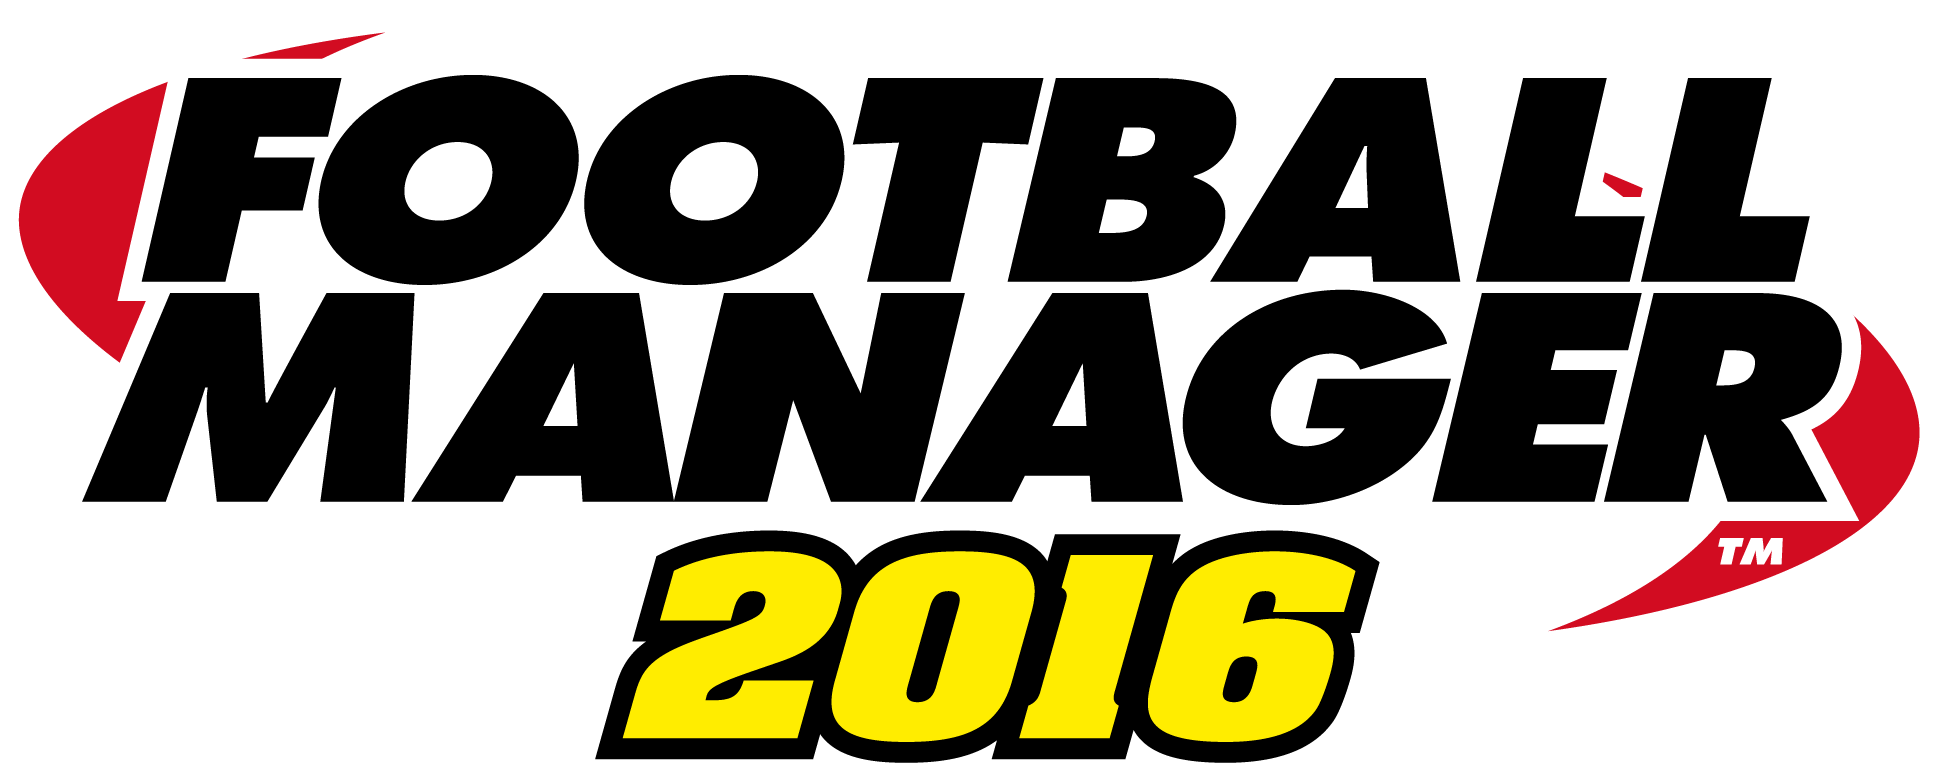 2016 logo png. Si splits football manager